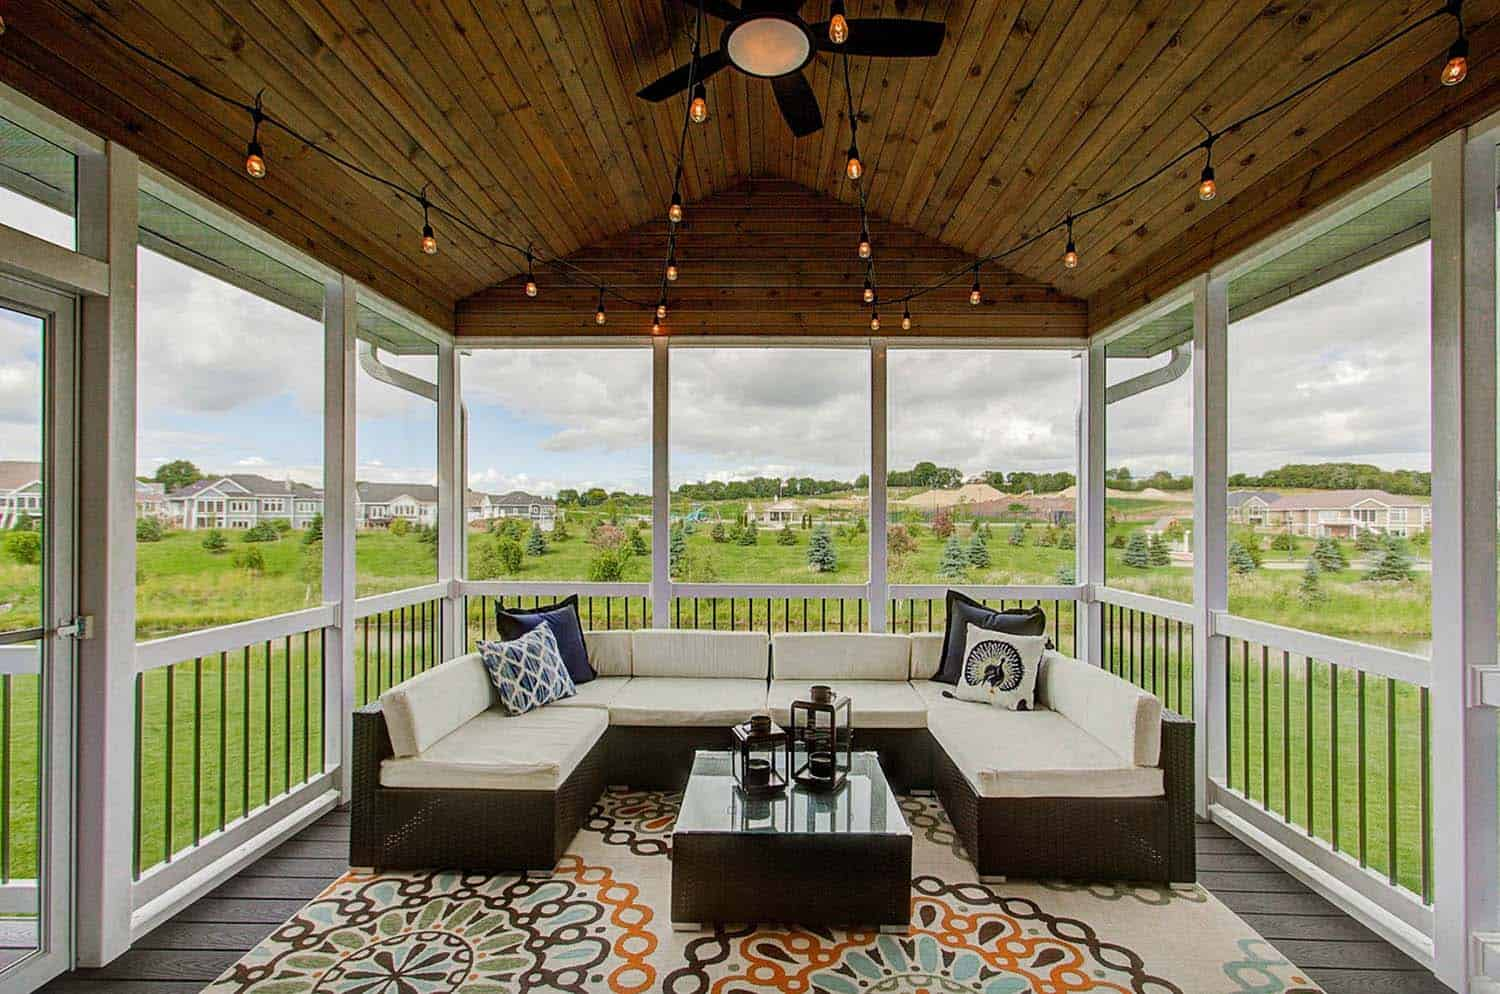 30 Delightful And Intimate Three Season Screened Porch Ideas